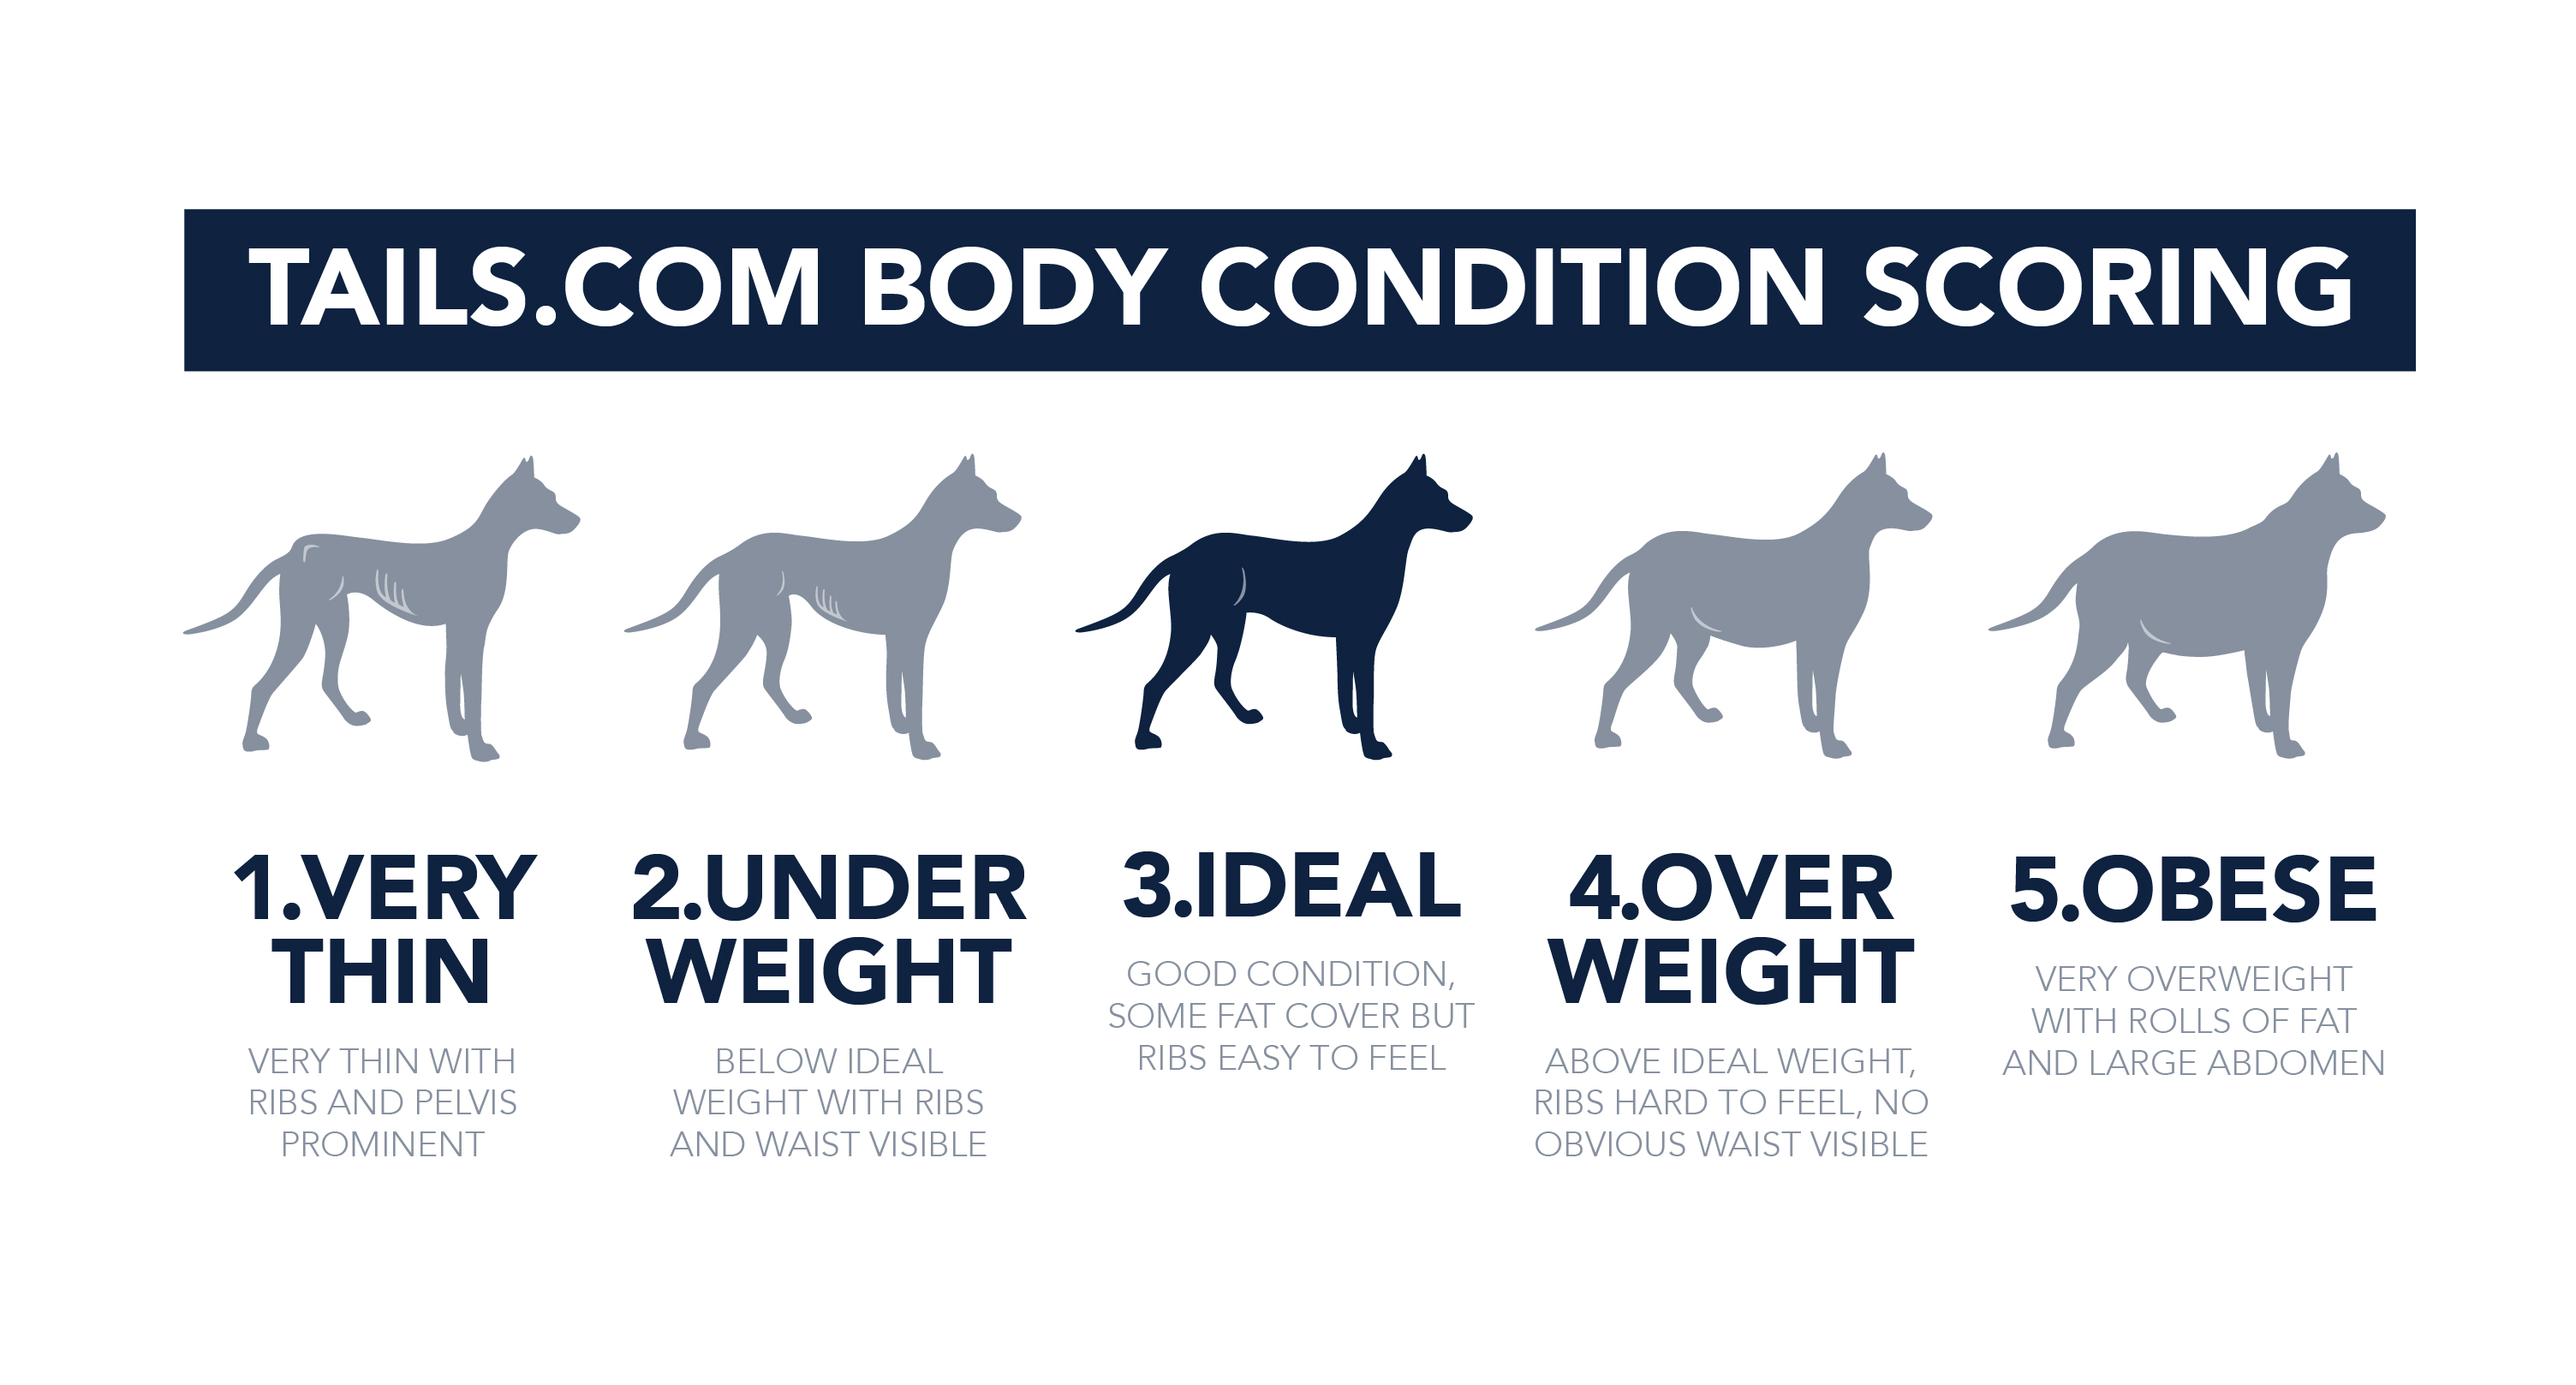 141028_TAILS_body condition table-01.jpg